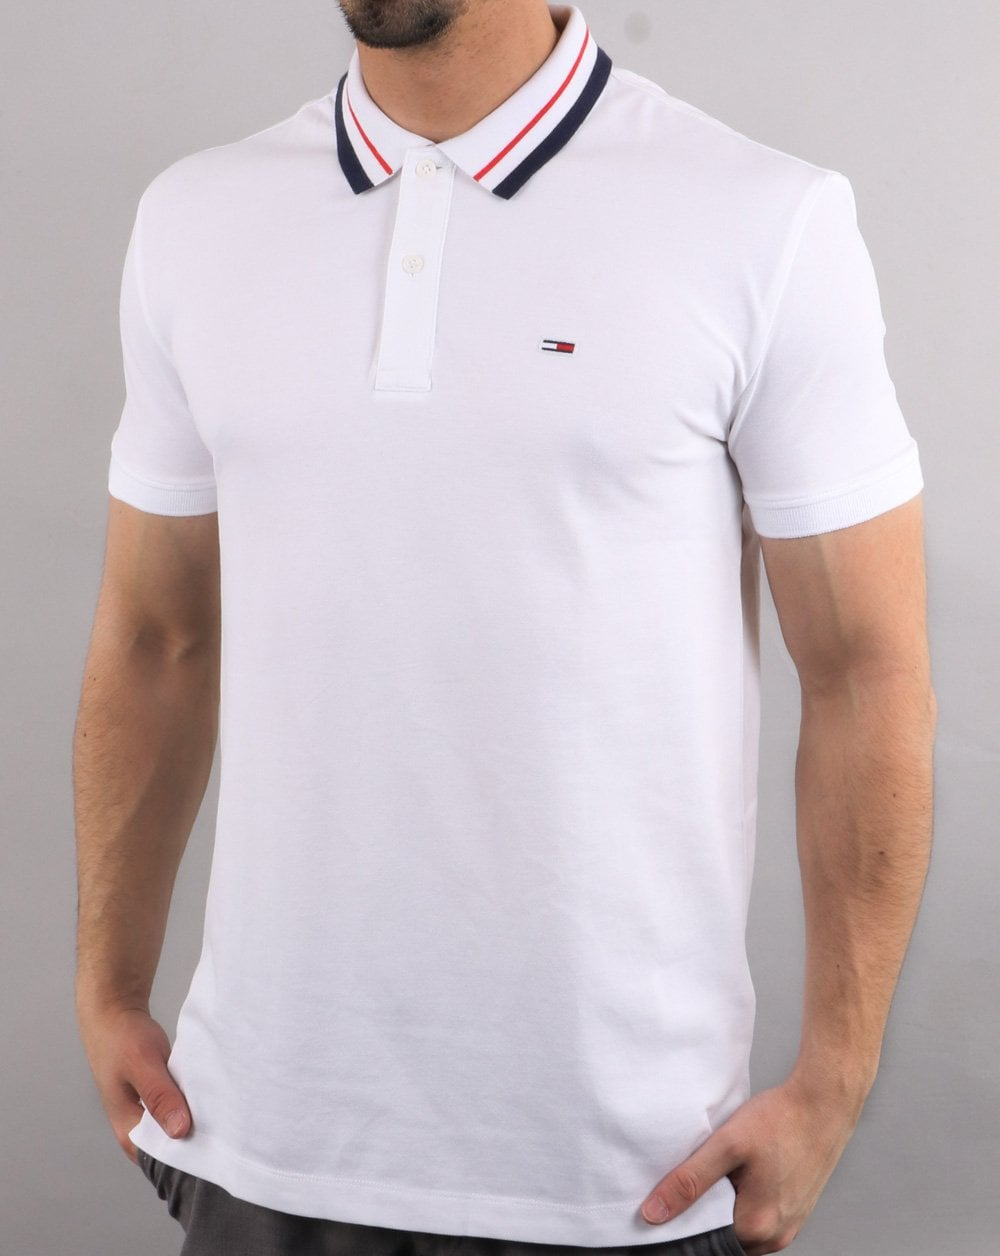 987ee4341ad2 Tommy Hilfiger Tipped Polo Shirt in White | 80s Casual Classics